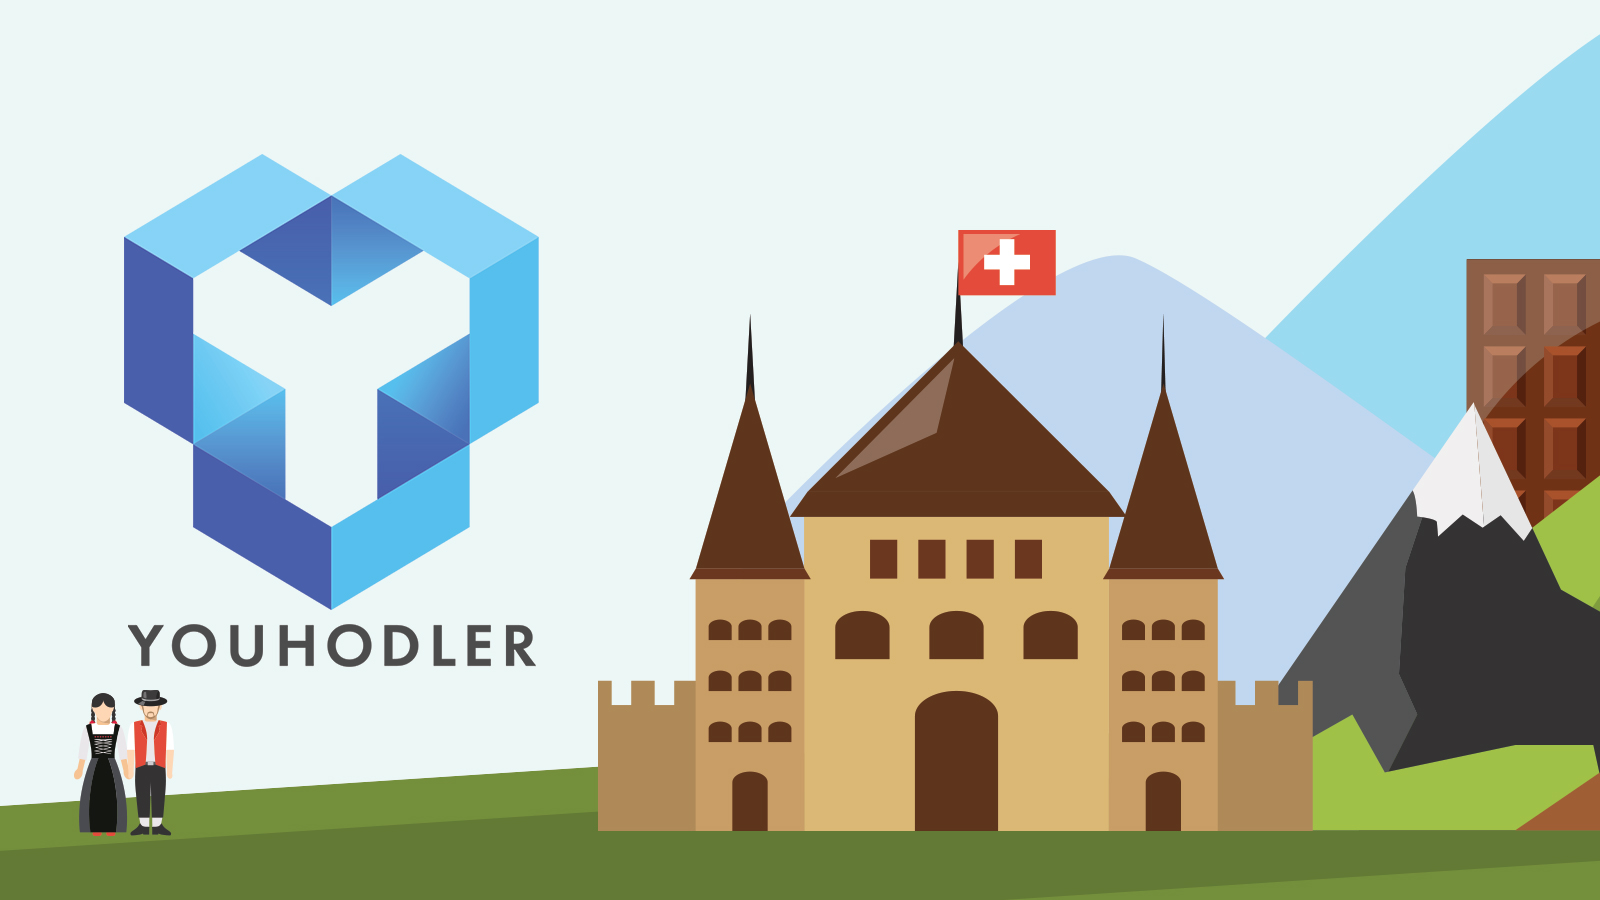 YouHodler, today announces the establishment of its legal entity in Lausanne, Switzerland - YouHodler SA.